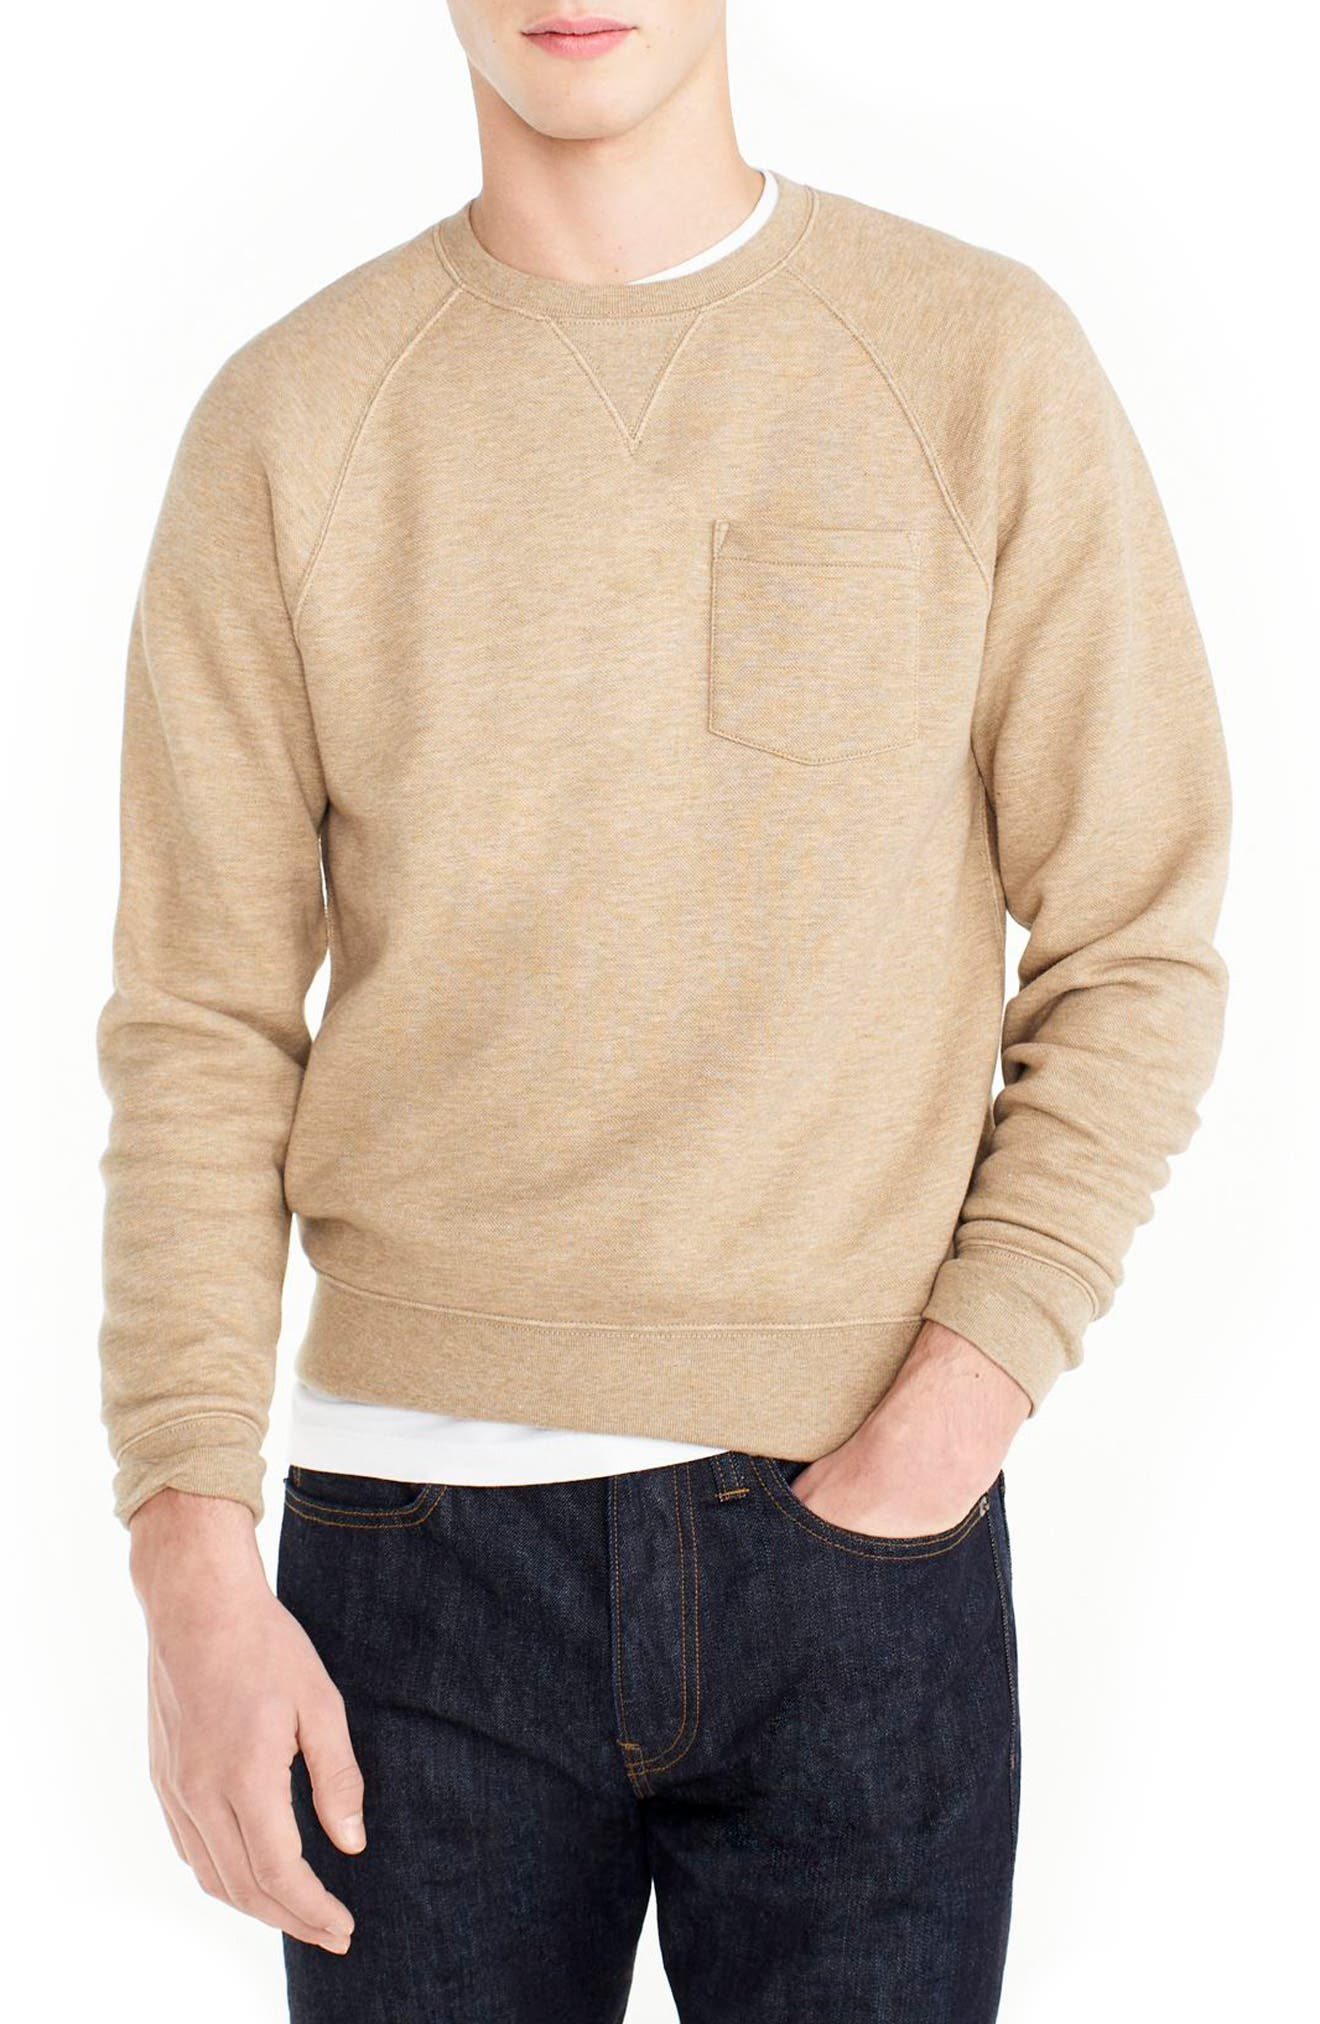 J.Crew Textured Piqué Fleece Sweatshirt